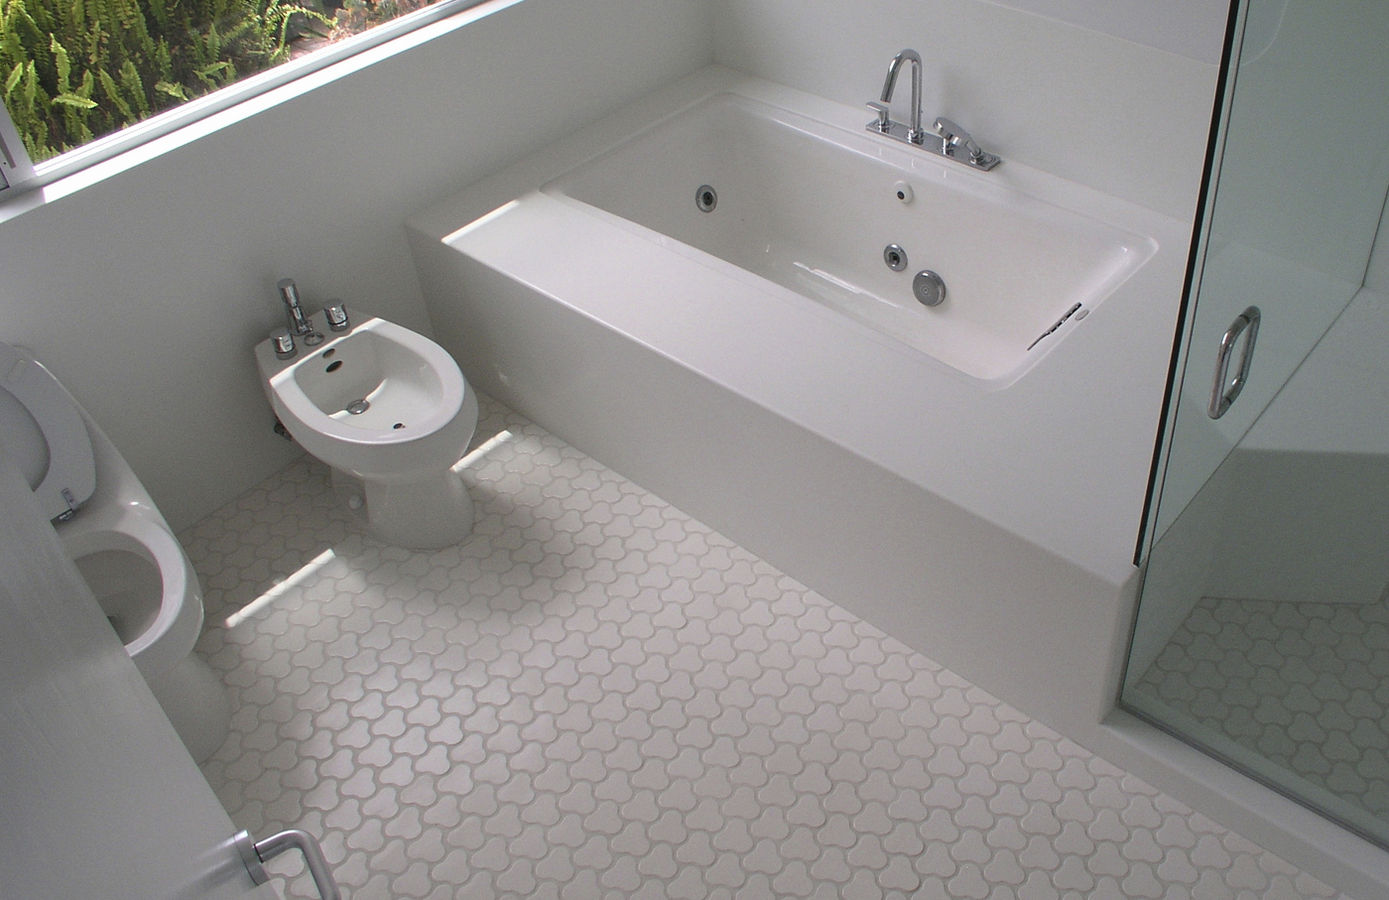 30 Cool Pictures And Ideas Honeycomb Bathroom Floor Tiles 2020